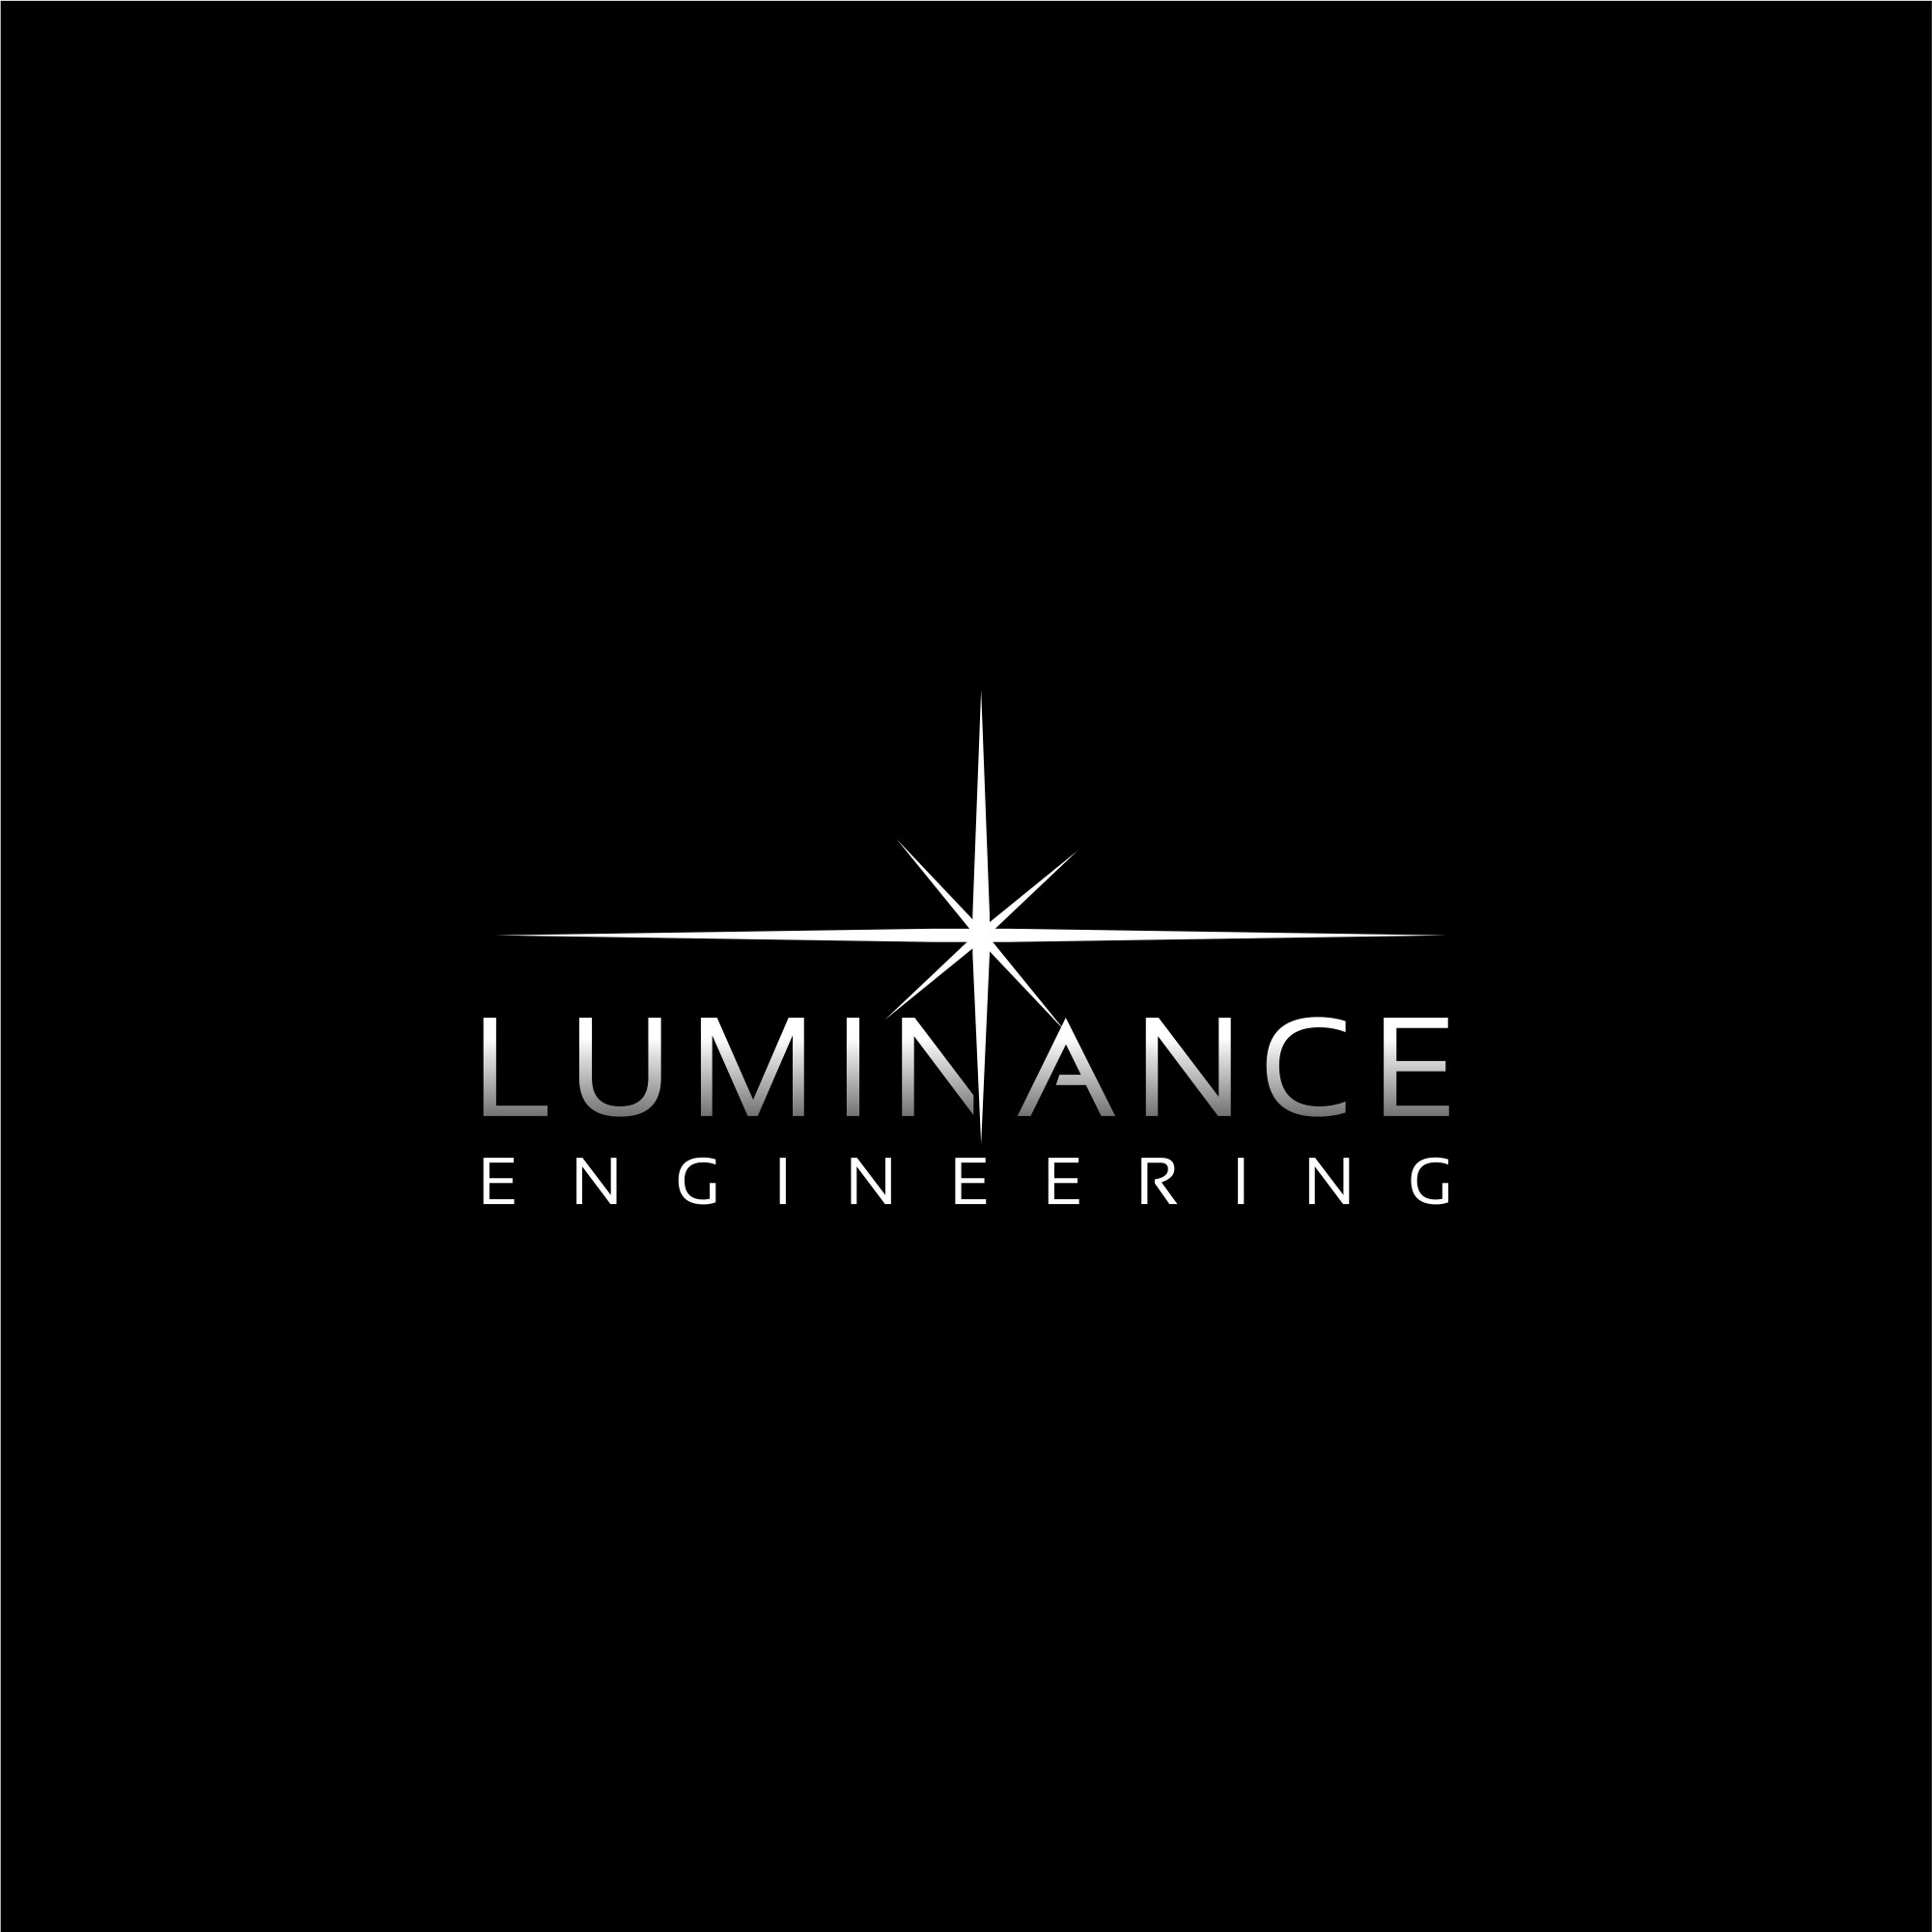 Car Head Light logo for my engineering and animation company